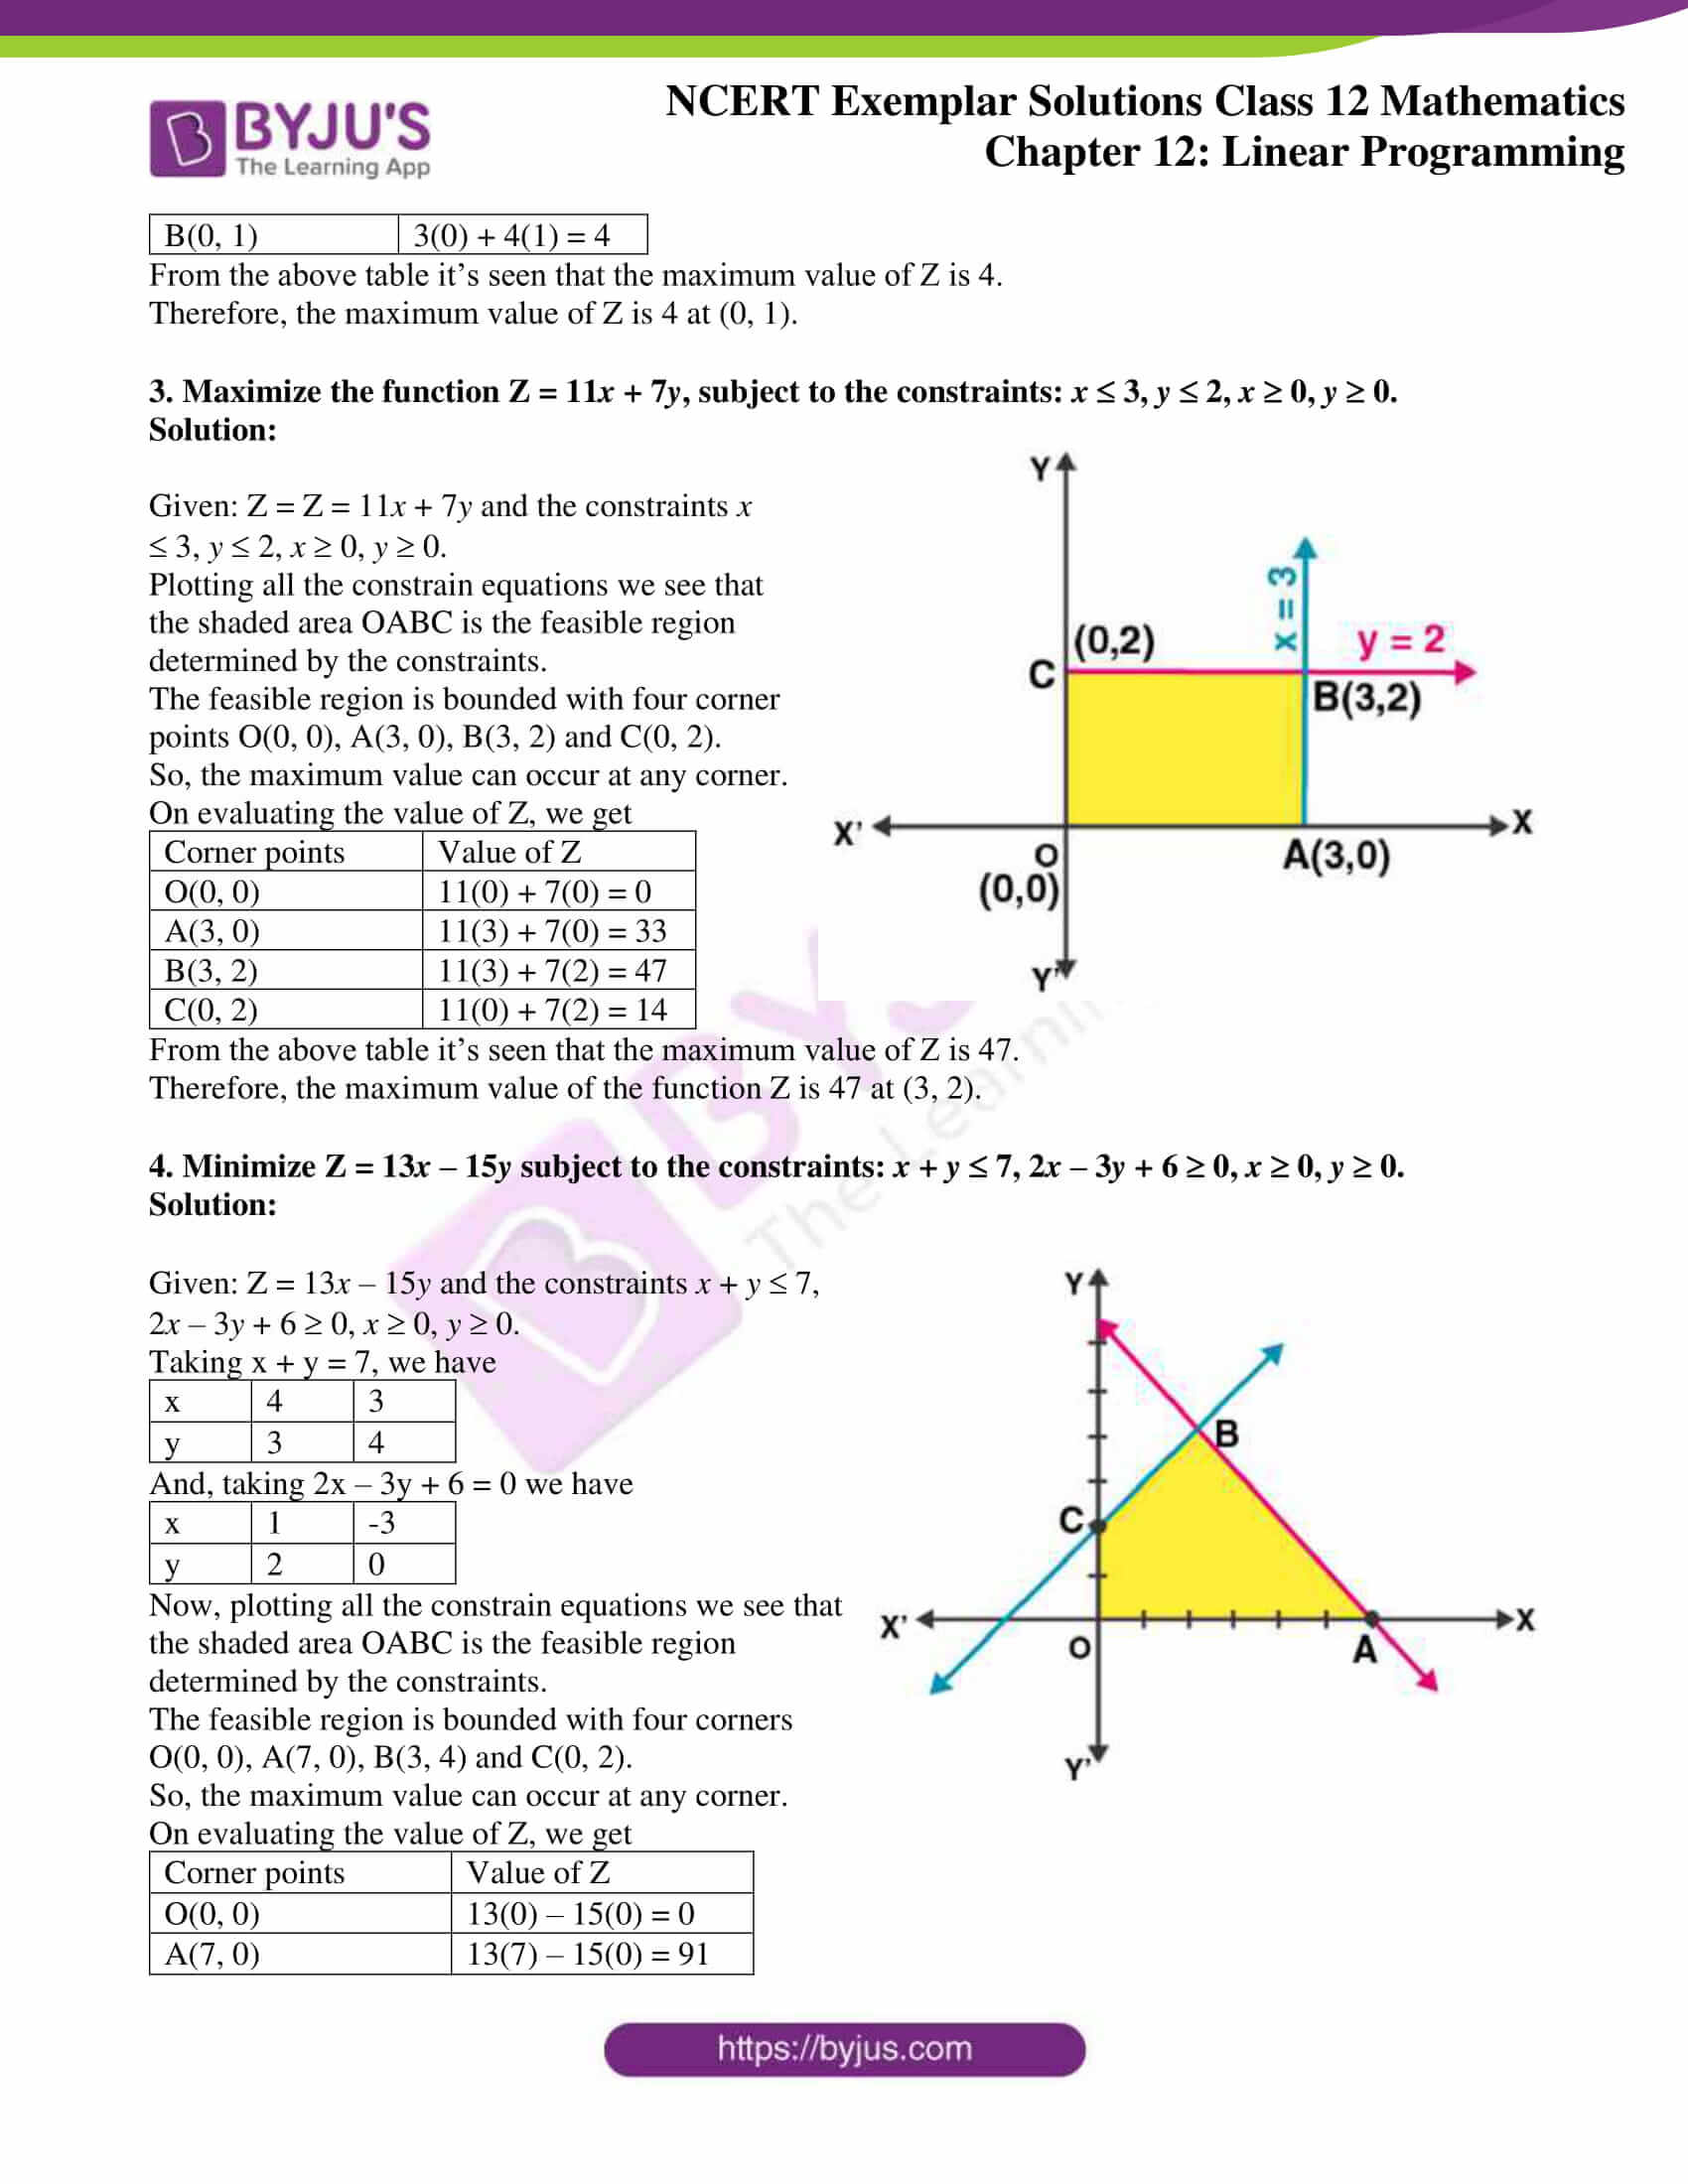 ncert exemplar sol class 12 mathematics chapter 12 02